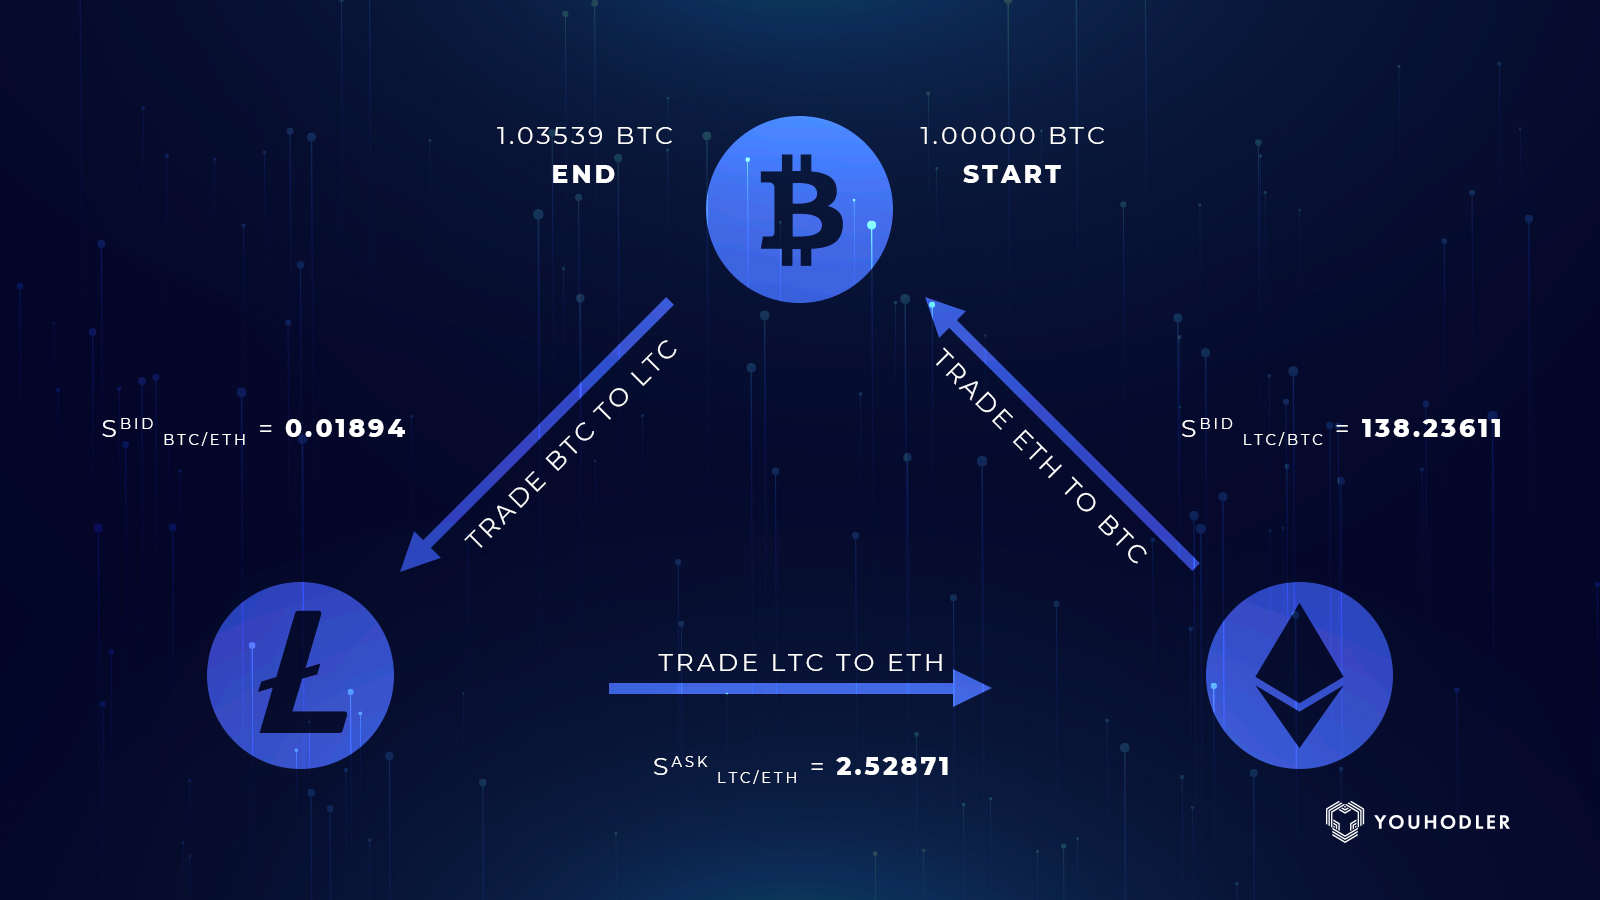 forex brokers for us clients arbitrage trade cryptocurrency